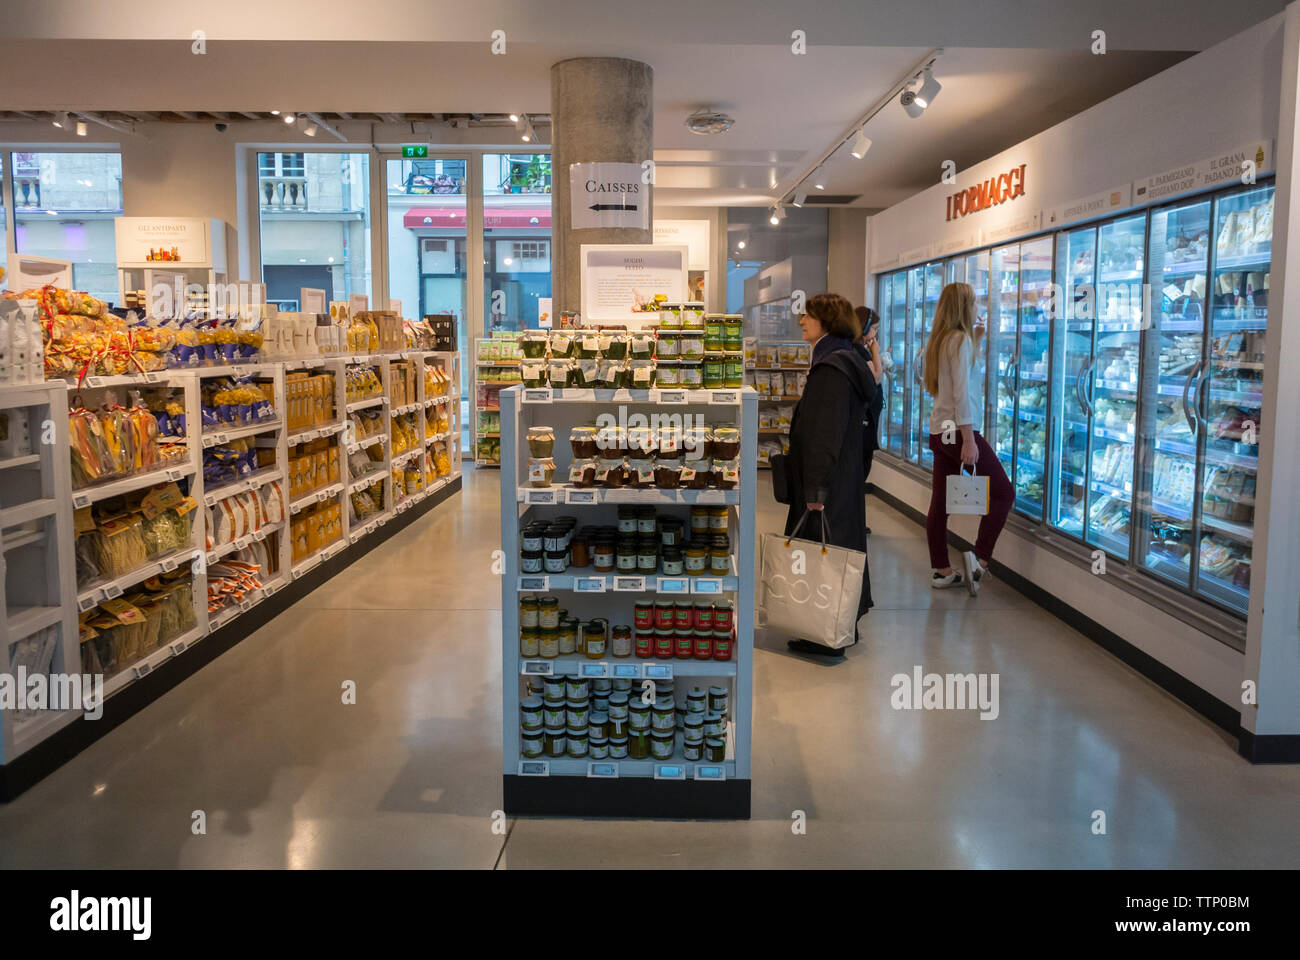 Paris, FRANCE, People inside  Italian Food Court, Store and BIstro Restaurant in the Marais, Eataly - Stock Image